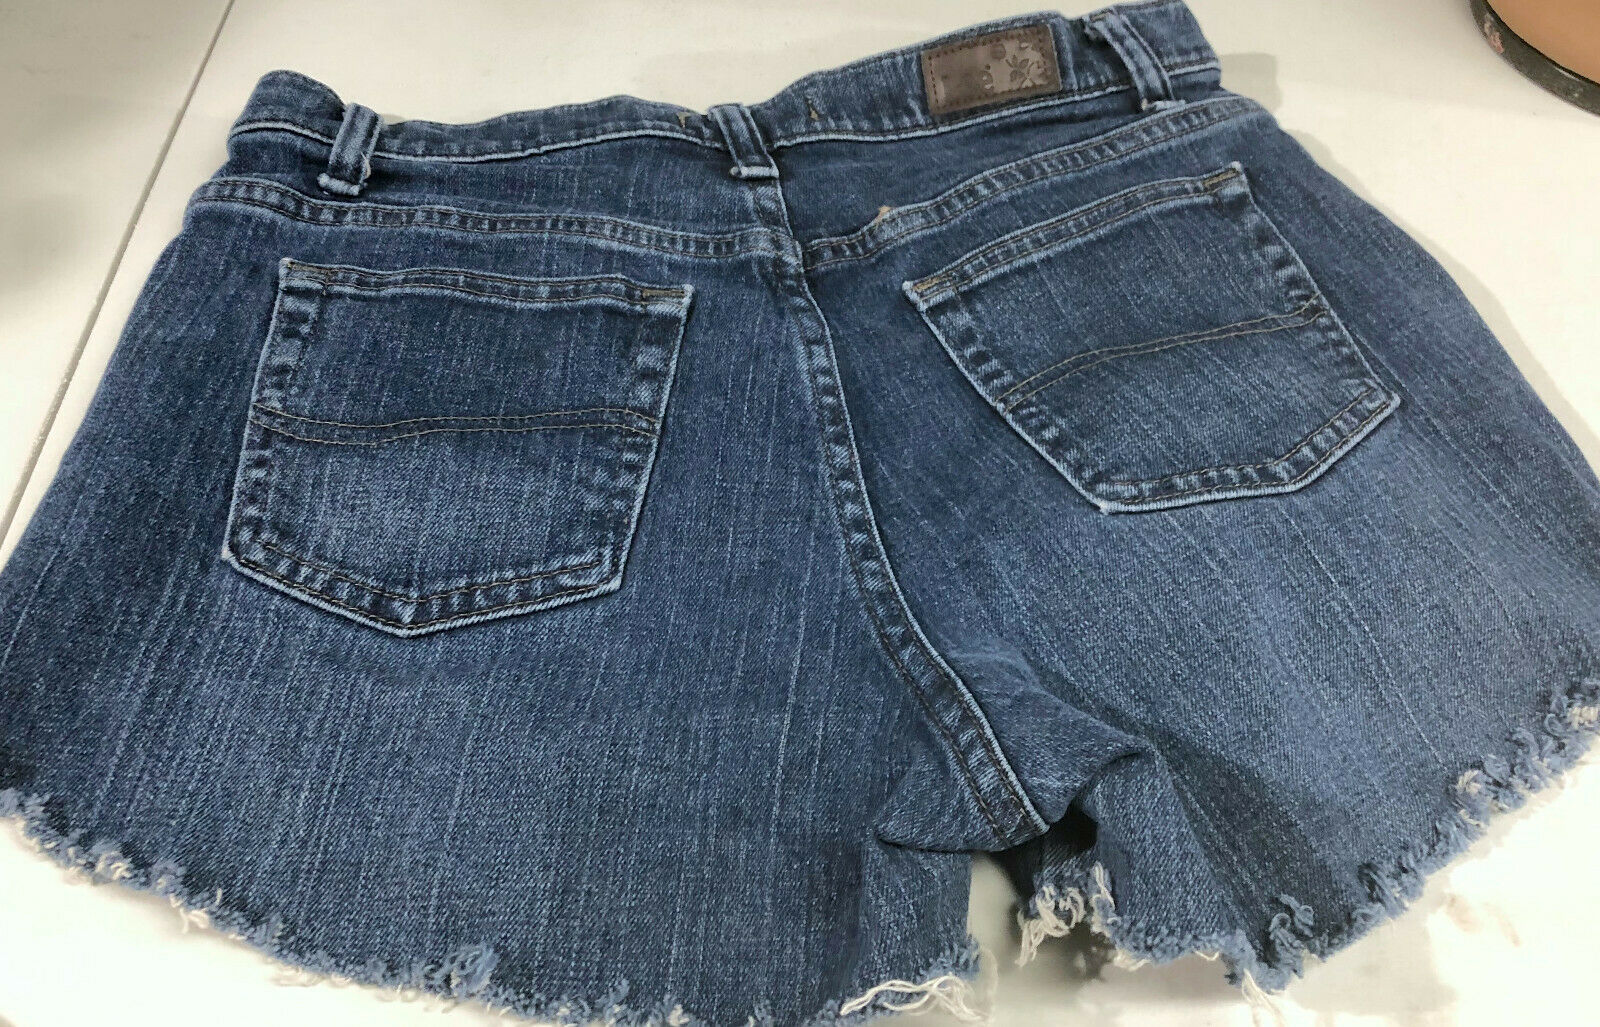 Lee Jeans Distressed Blue Jean Short Shorts Booty Size 8 Long image 4